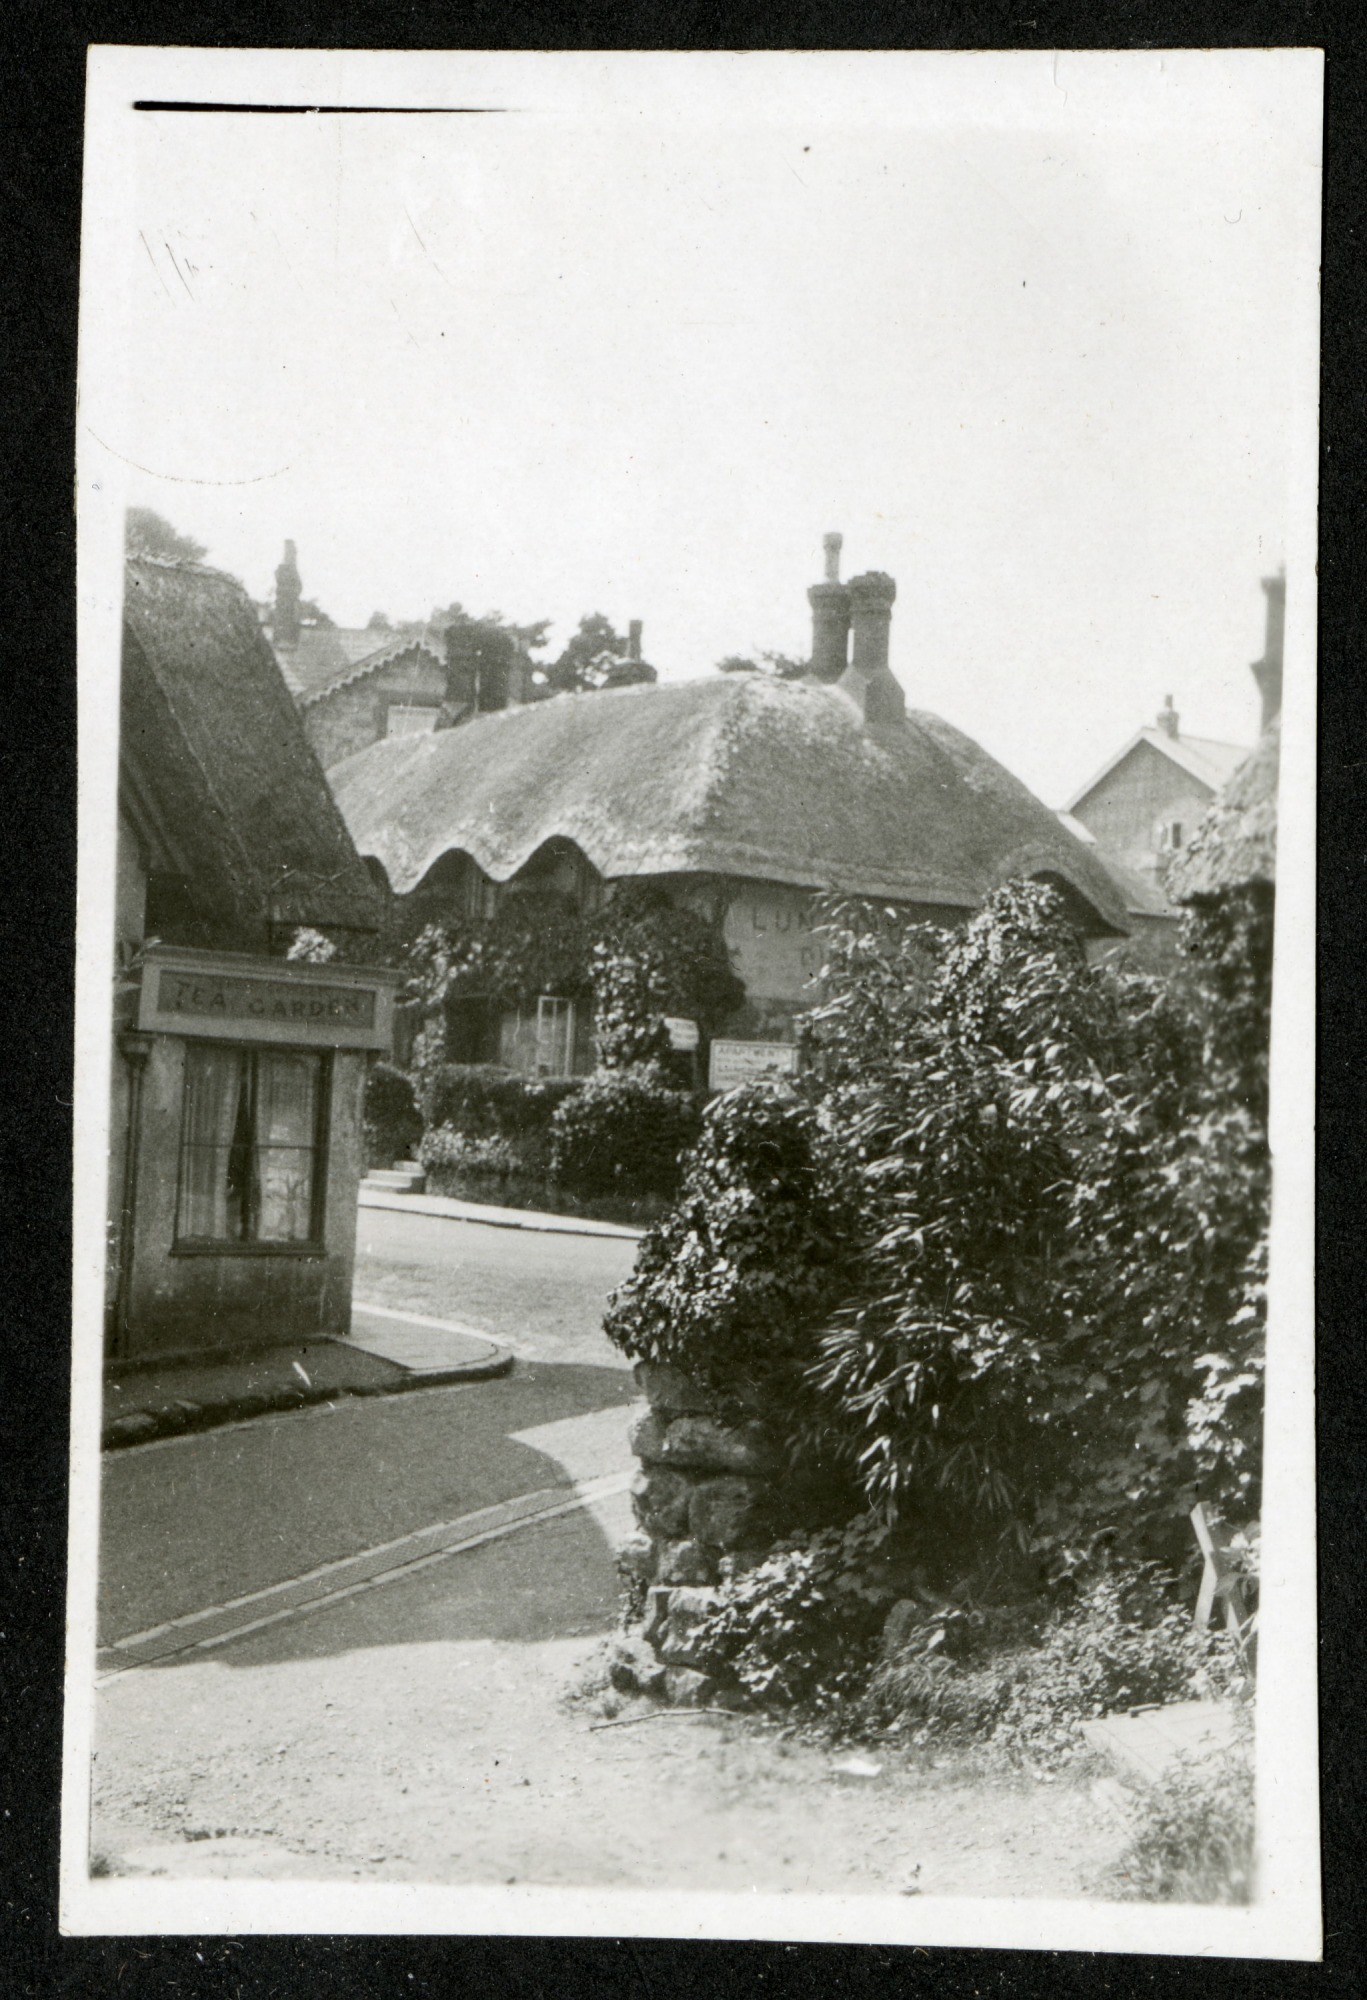 Thatched cottage, 1925, Smithsonian Institution Archives, SIA RU007091 [SIA2015-003200].